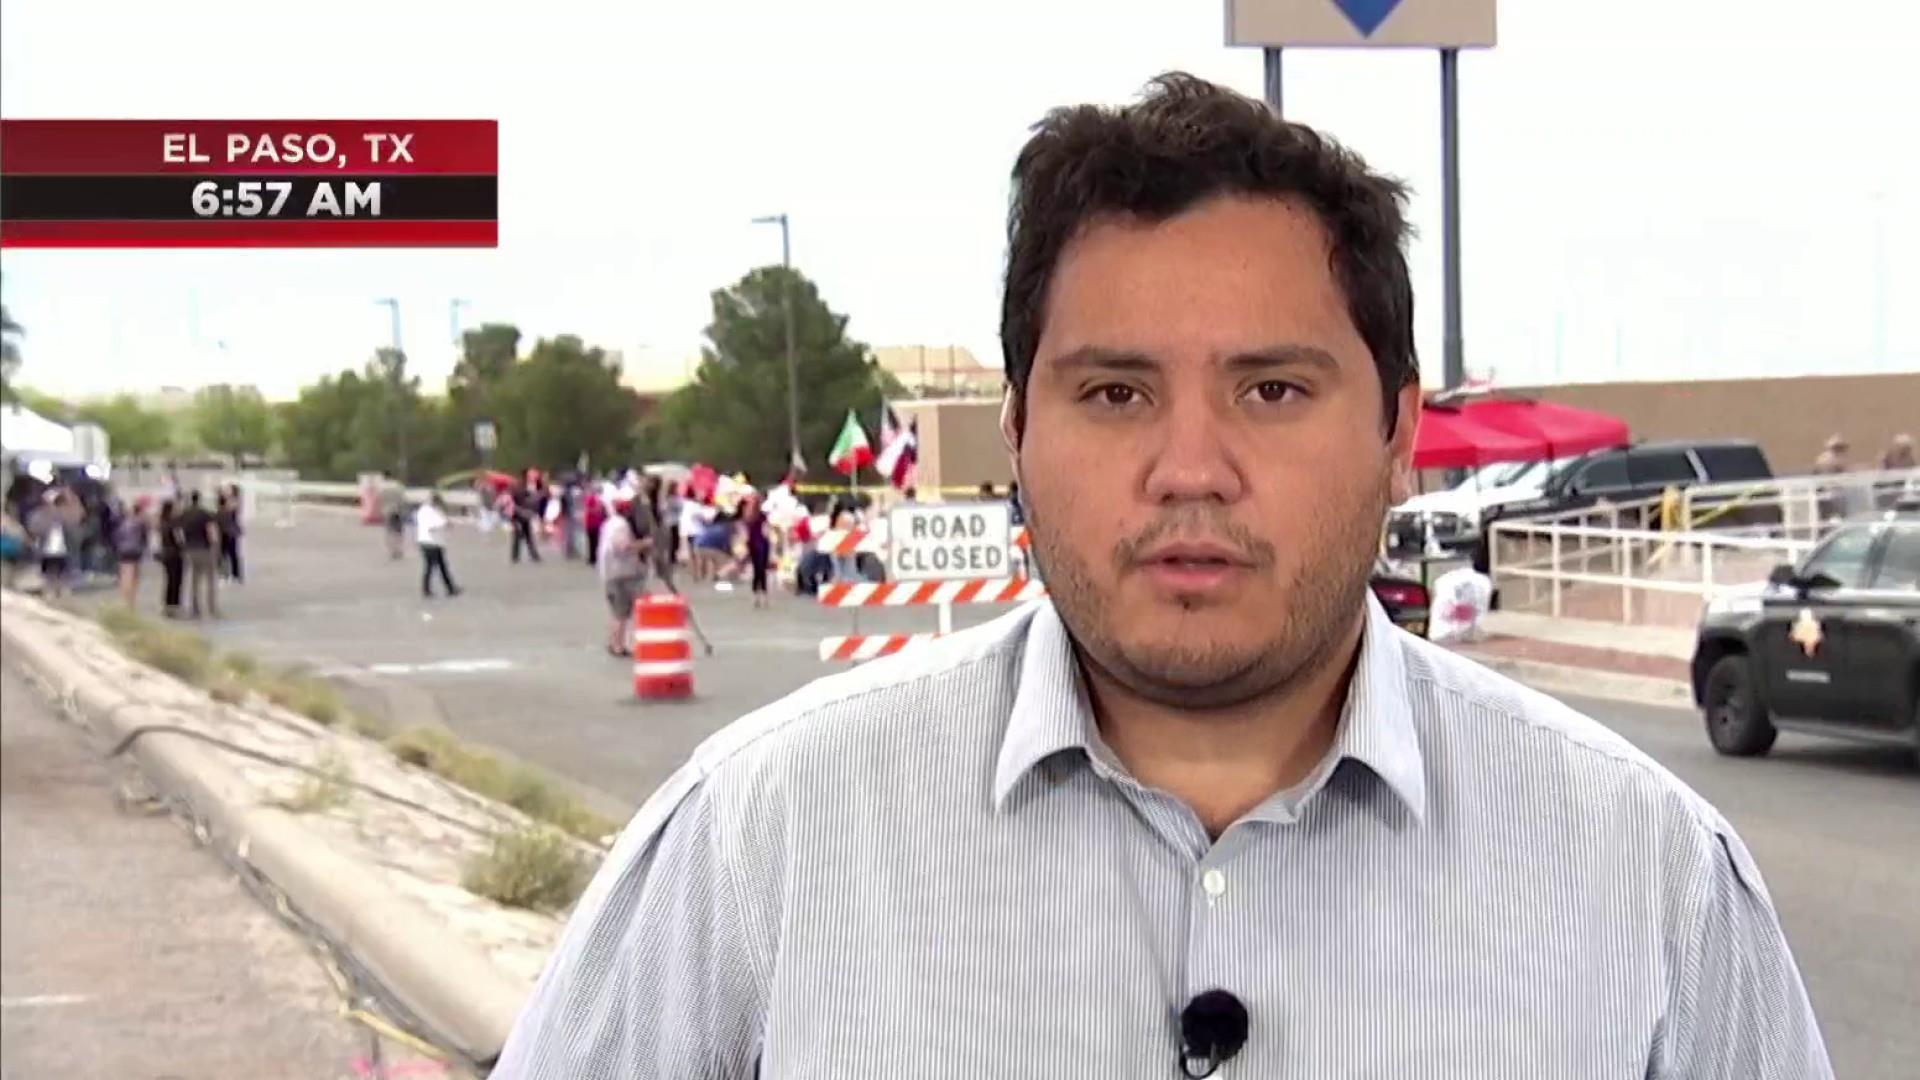 Expect to see protests over Trump El Paso visit, says reporter